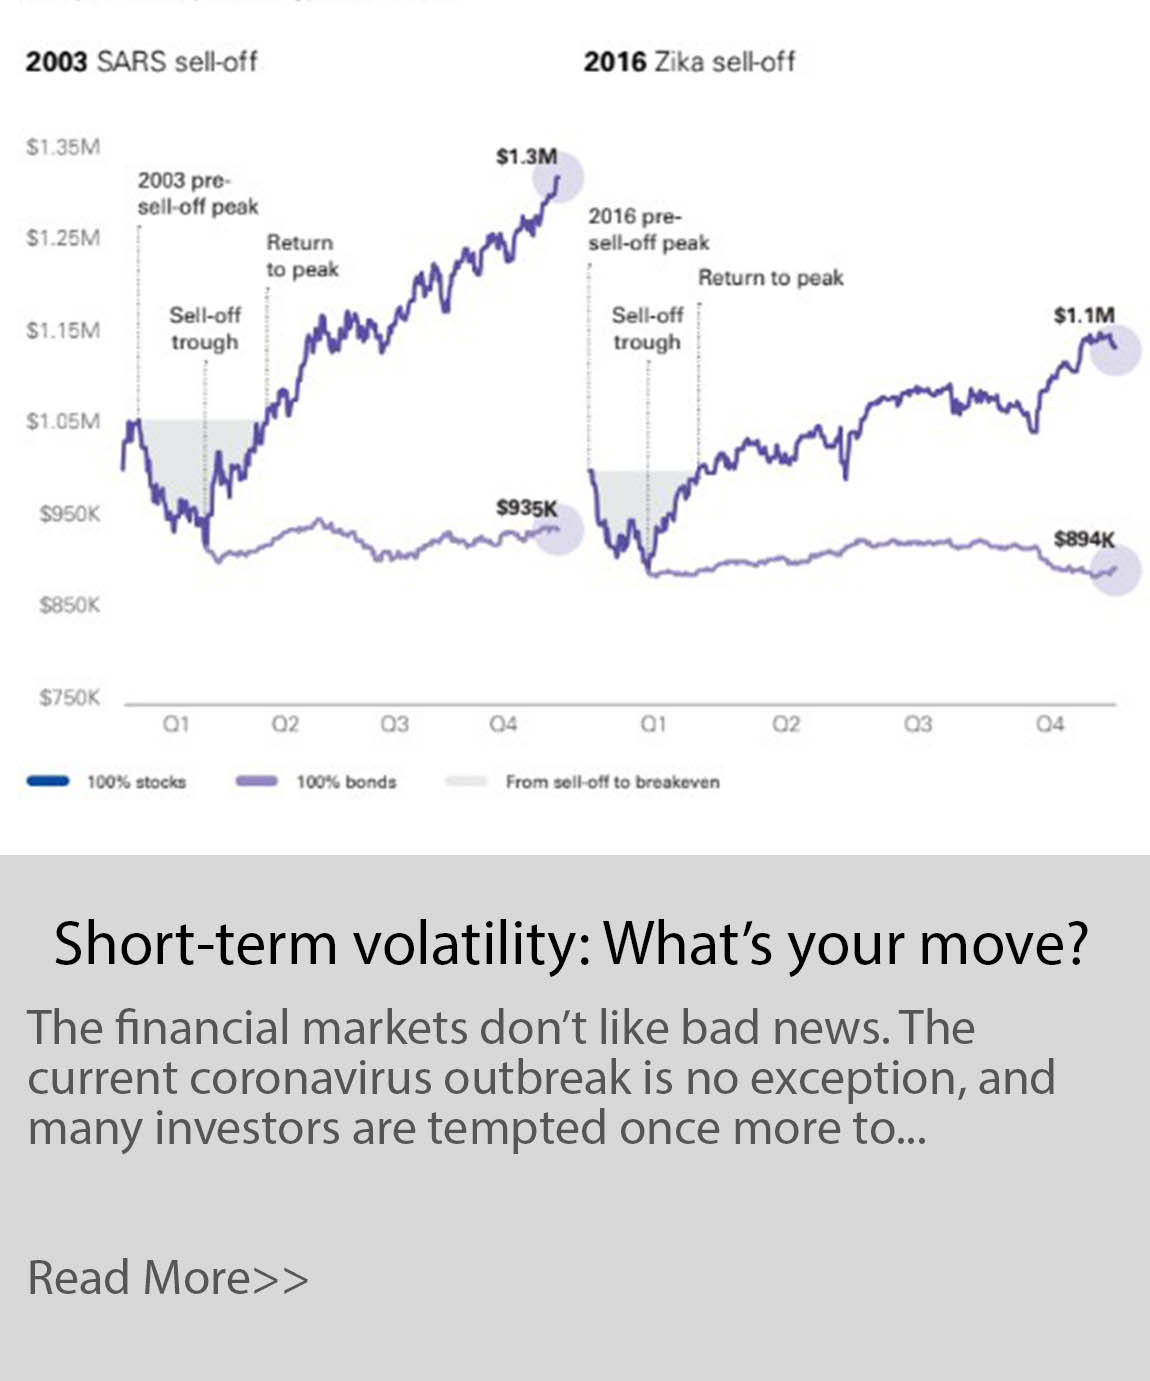 Short-term volatility: What's your move?